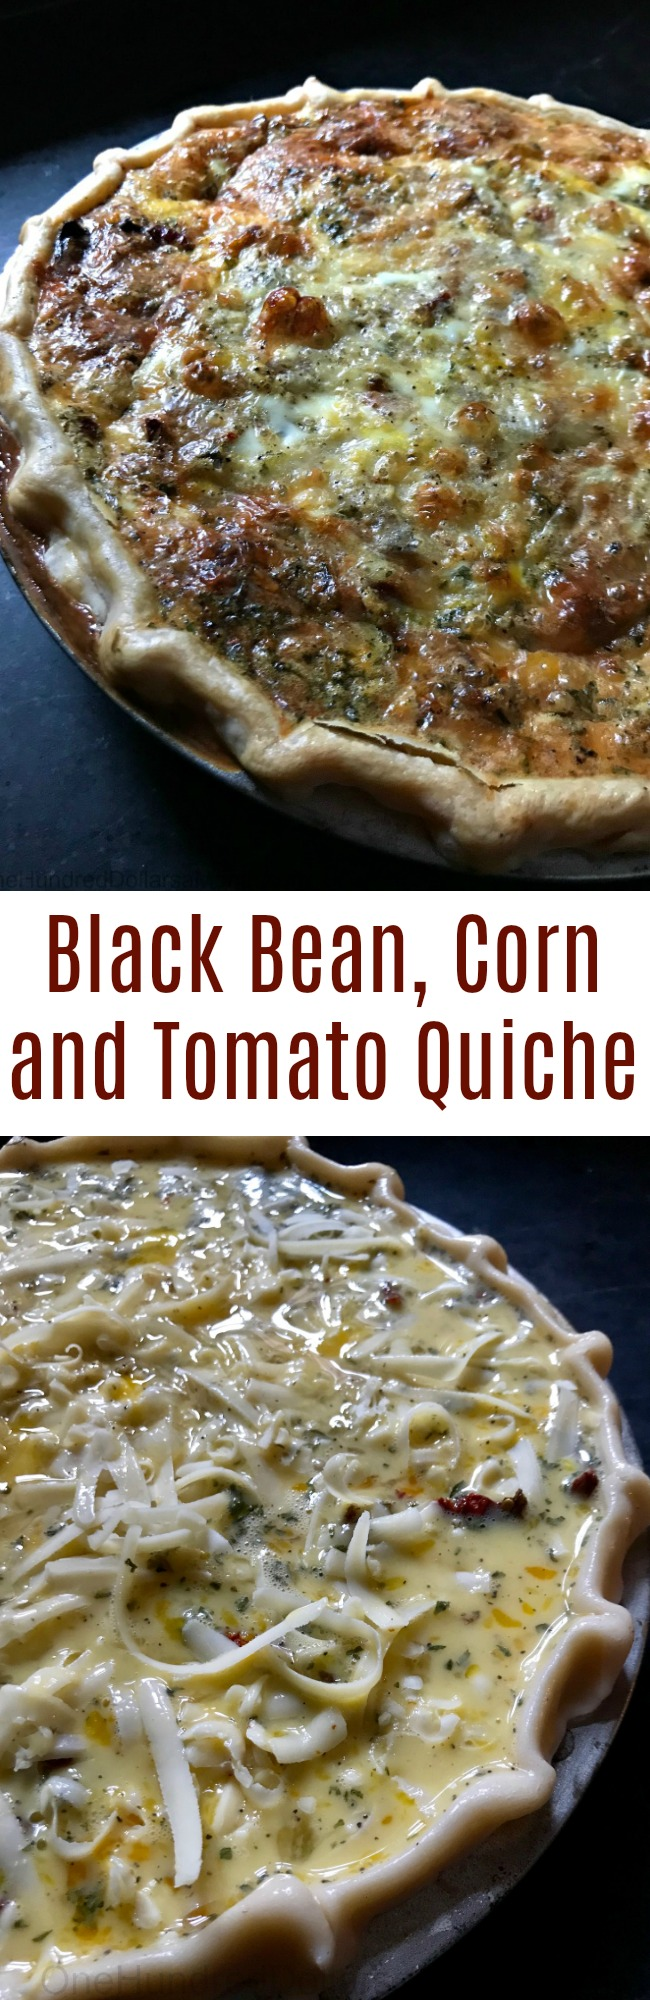 Easy Quiche Recipes – Black Bean, Corn and Tomato Quiche